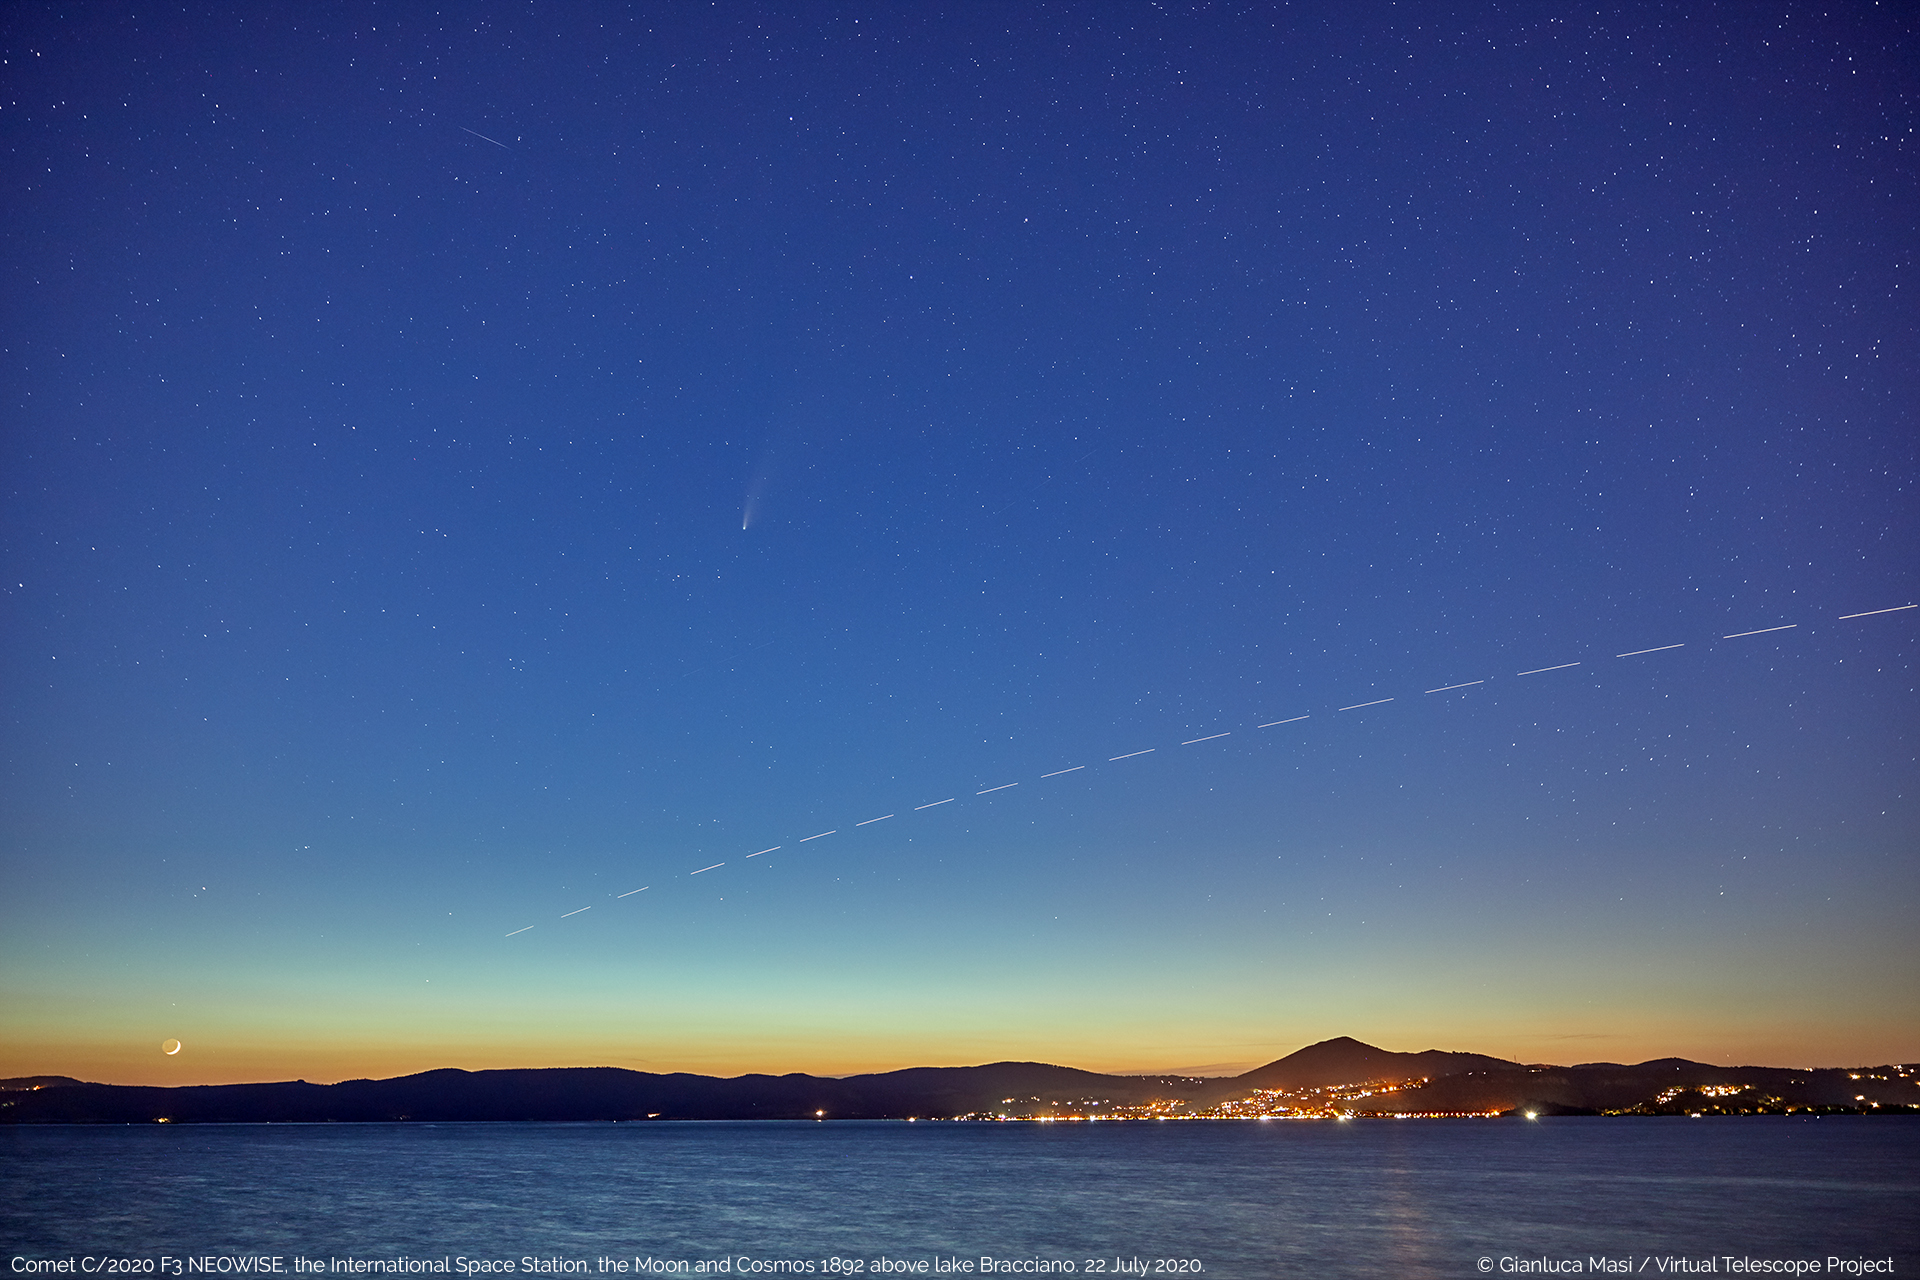 Comet C/2020 F3 NEOWISE at sunset, above the lake Bracciano, Italy, with a very young Moon and the International Space Station crossing the field of view, as well as satellite Cosmos 1892 - 22 July 2020.